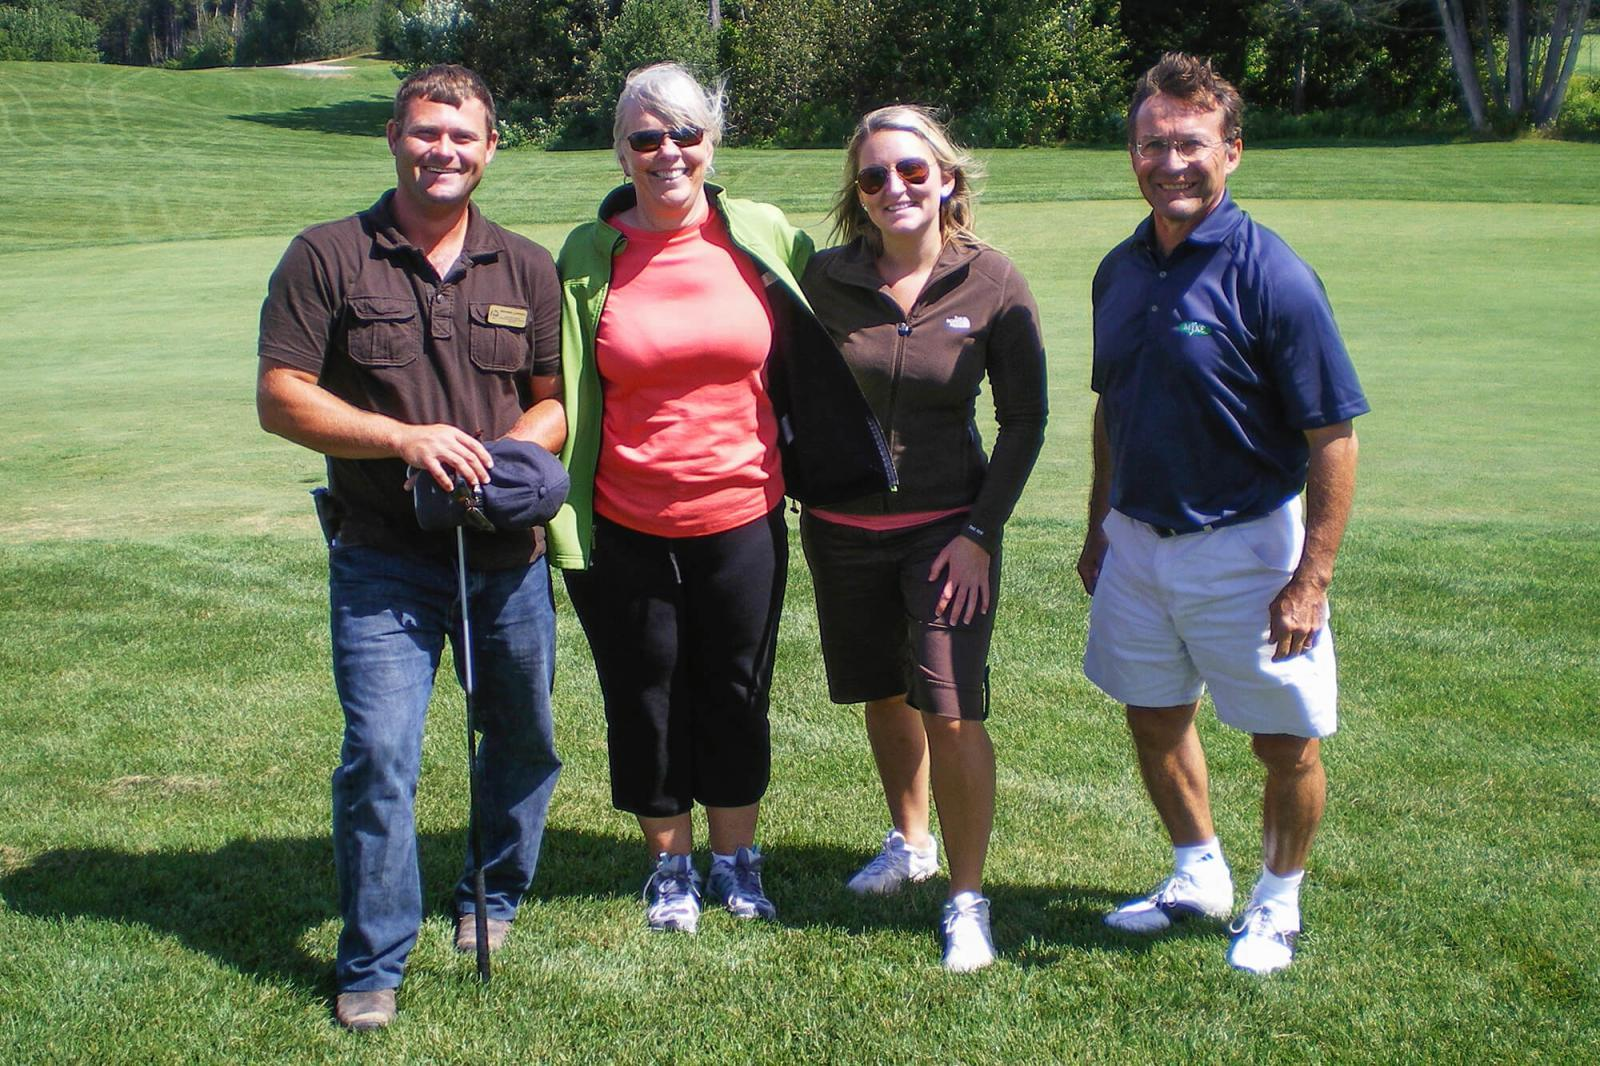 Georgian Lakelands chapter president Michael LaPorte with Lois Pudden, Courtney Melton and John Renaud at the chapter's golf tournament.